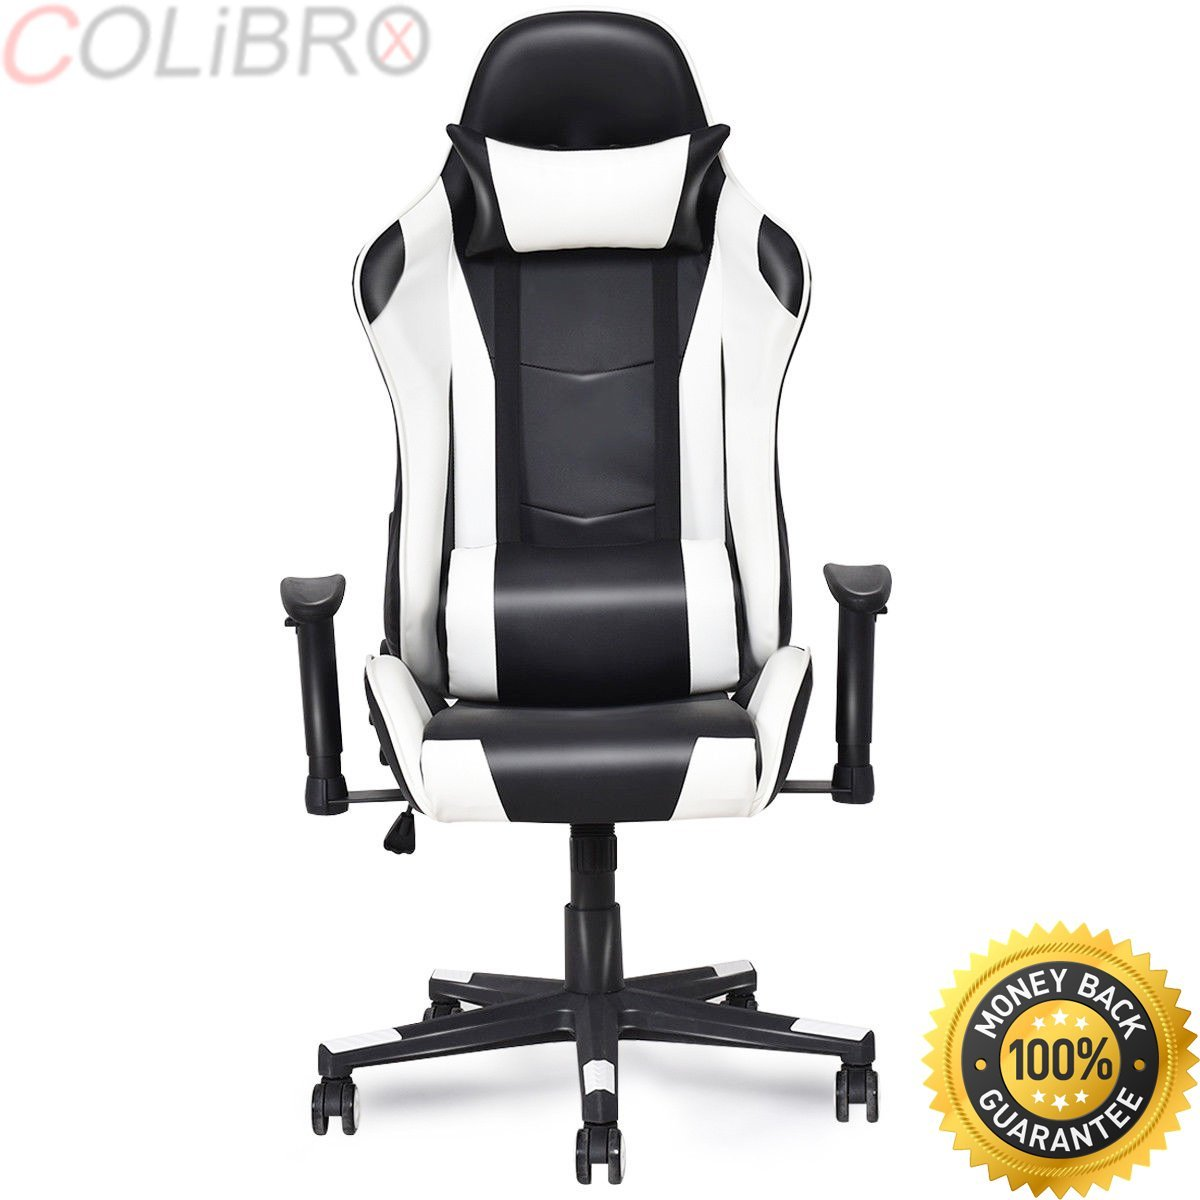 COLIBROX--Executive Racing Style High Back Recliner PVC Chair Gaming Chair Office Computer.executive racing style high back reclining chair gaming chair office computer.best gaming chair amazon.